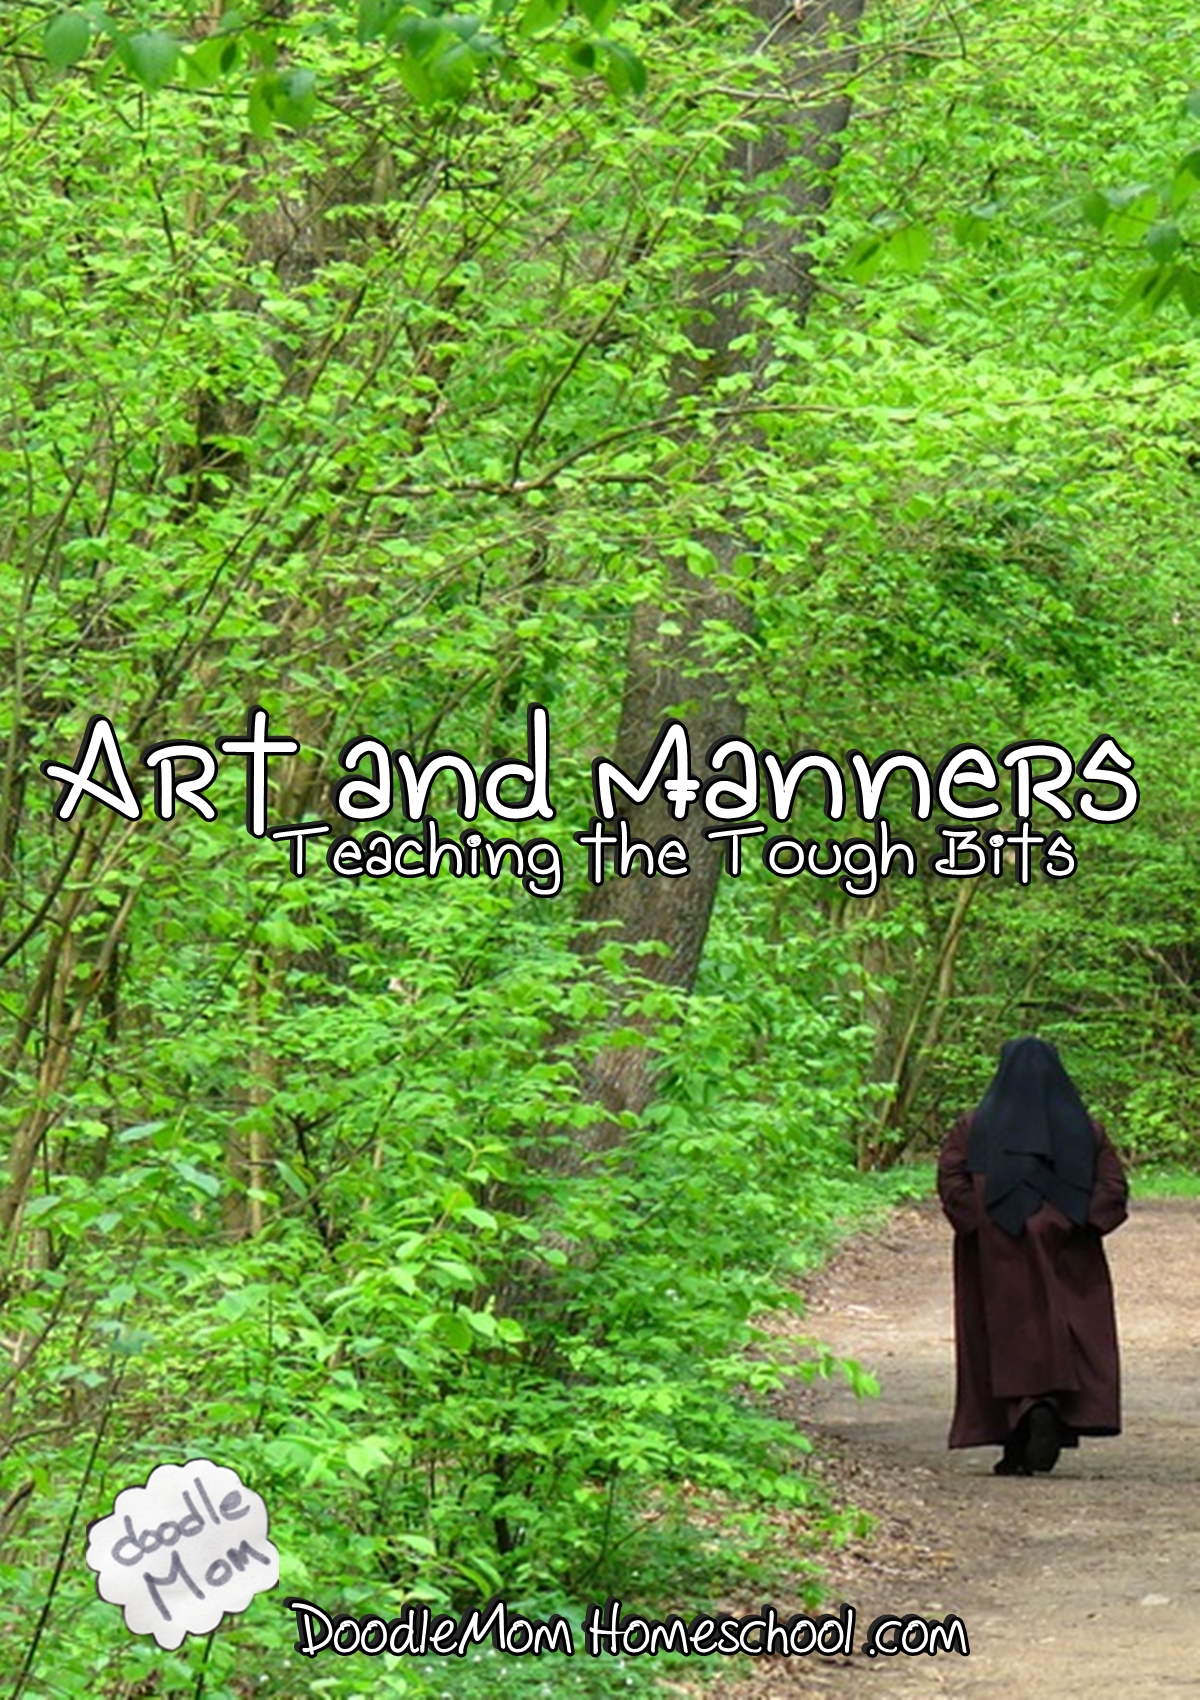 Art and Manners